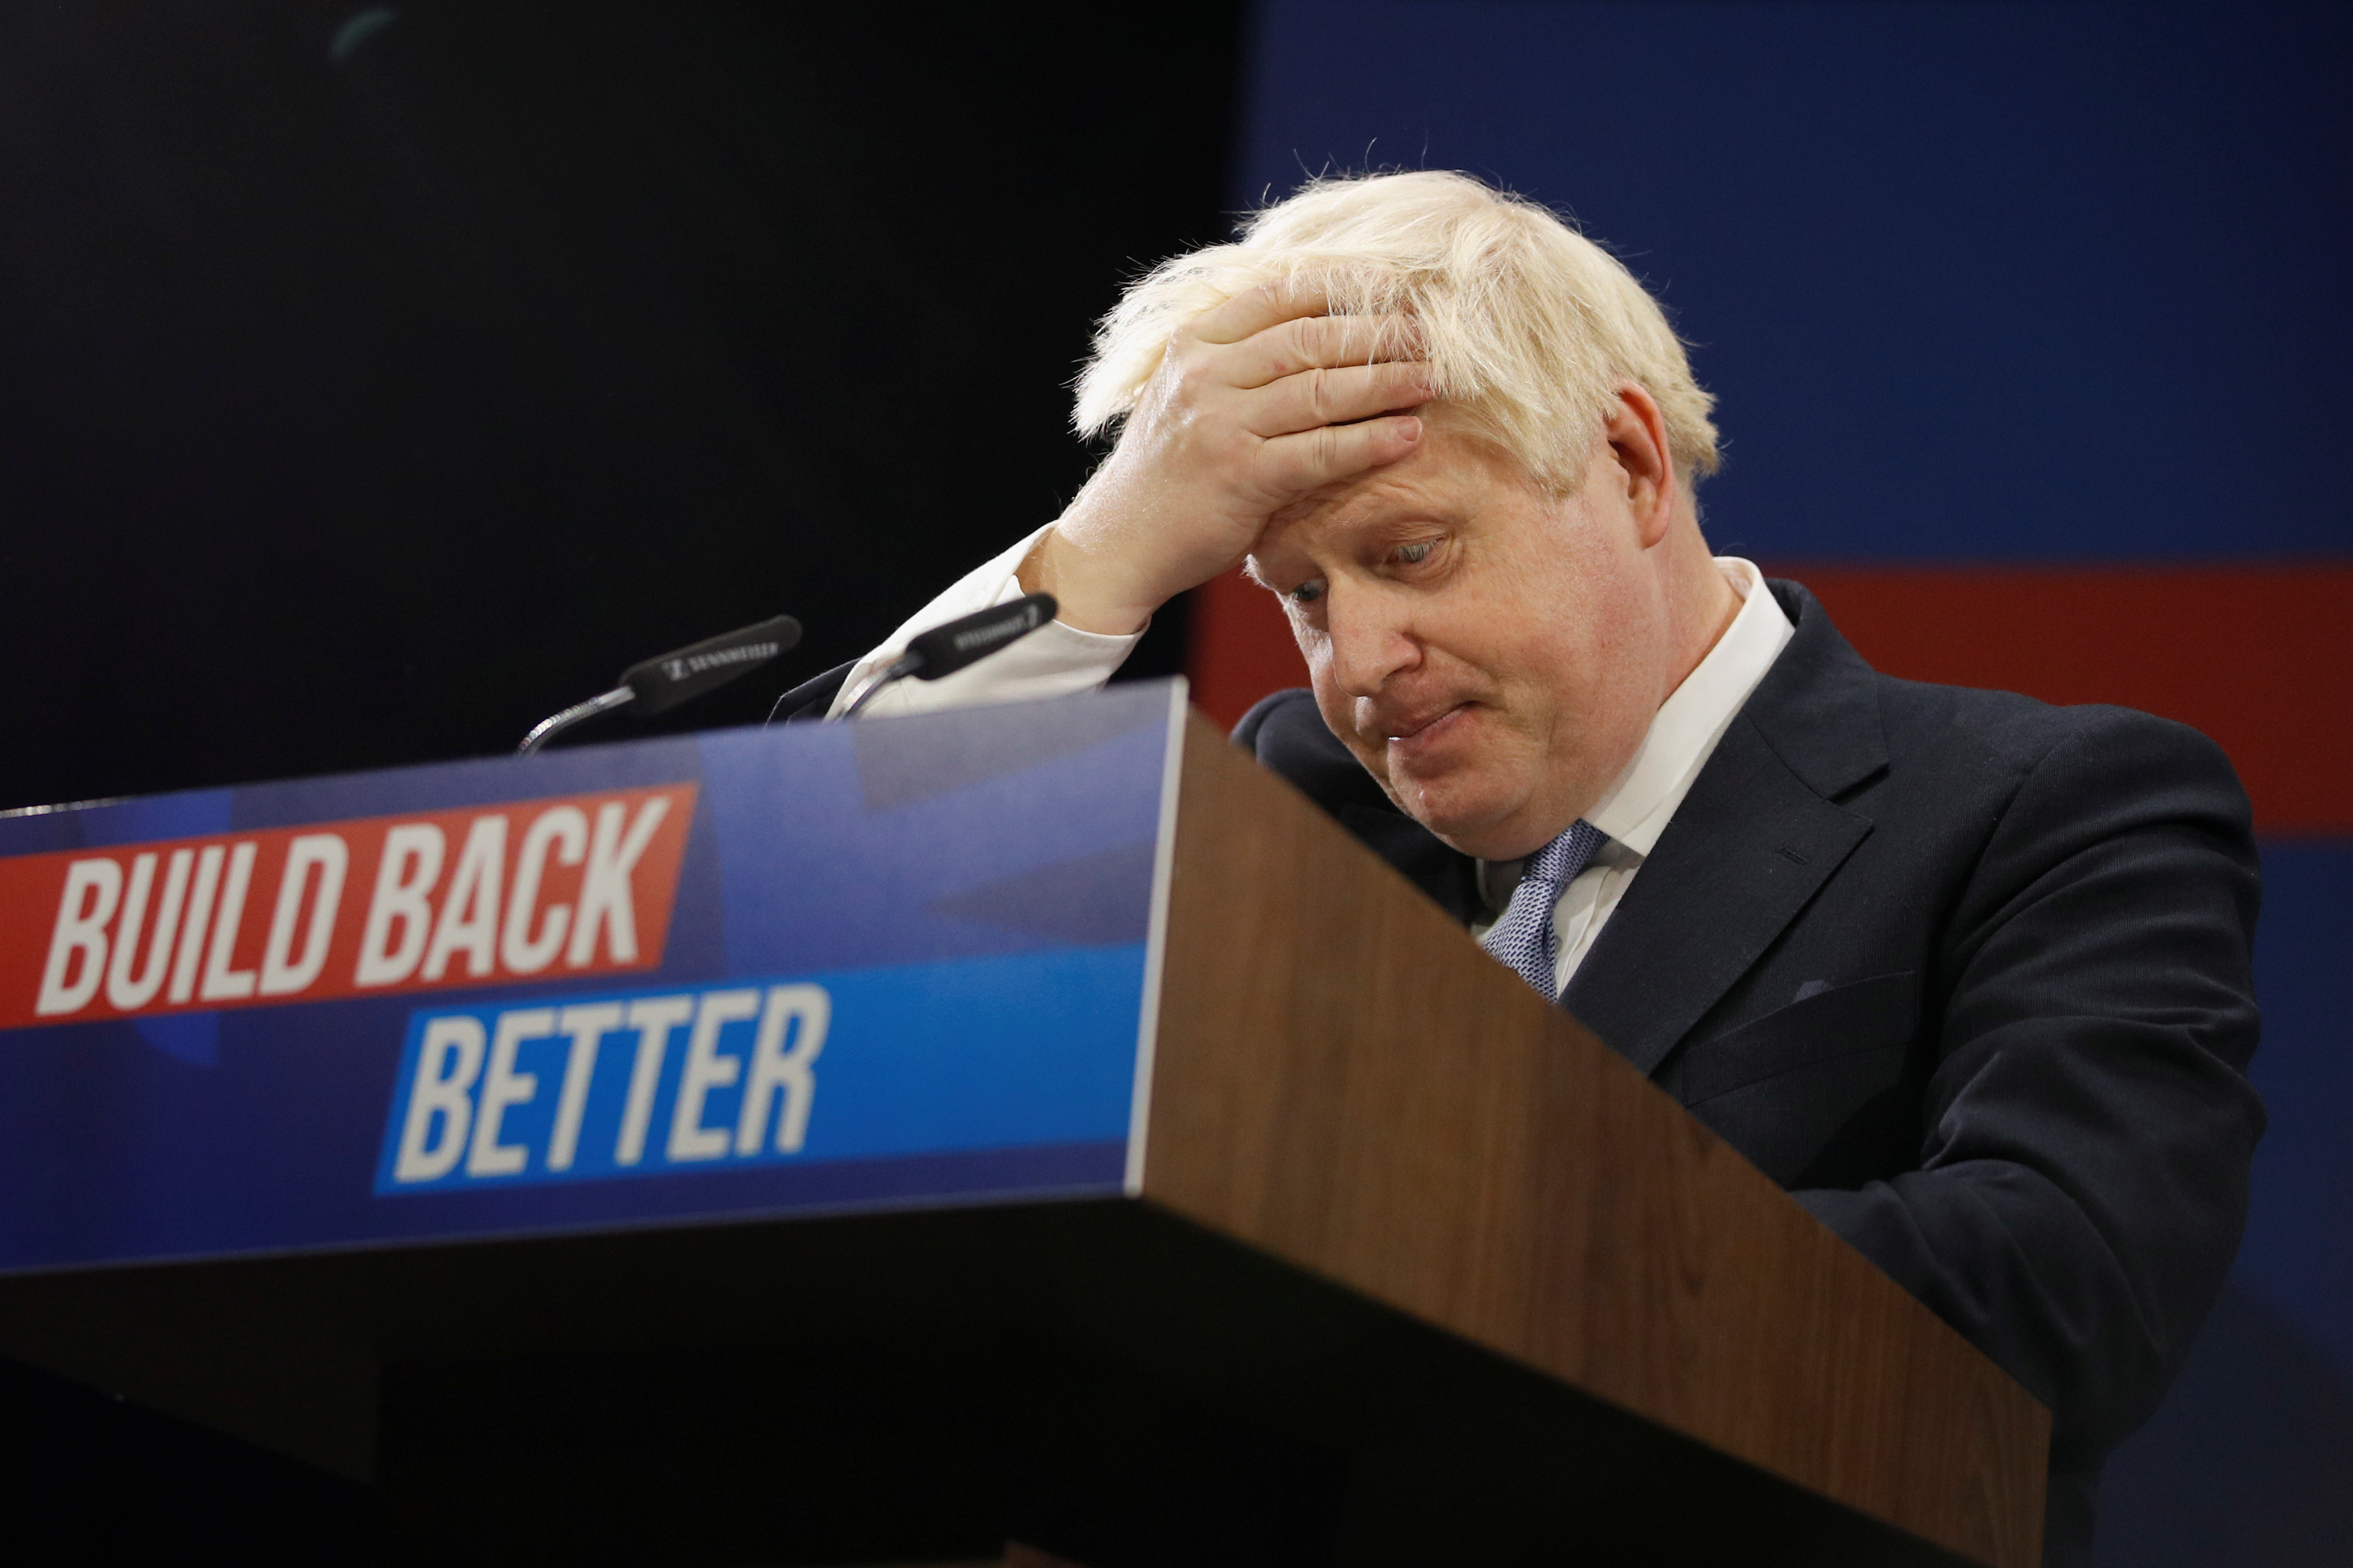 British Prime Minister Boris Johnson reacts as he delivers a speech in Manchester, Britain, October 6, 2021. REUTERS/Phil Noble